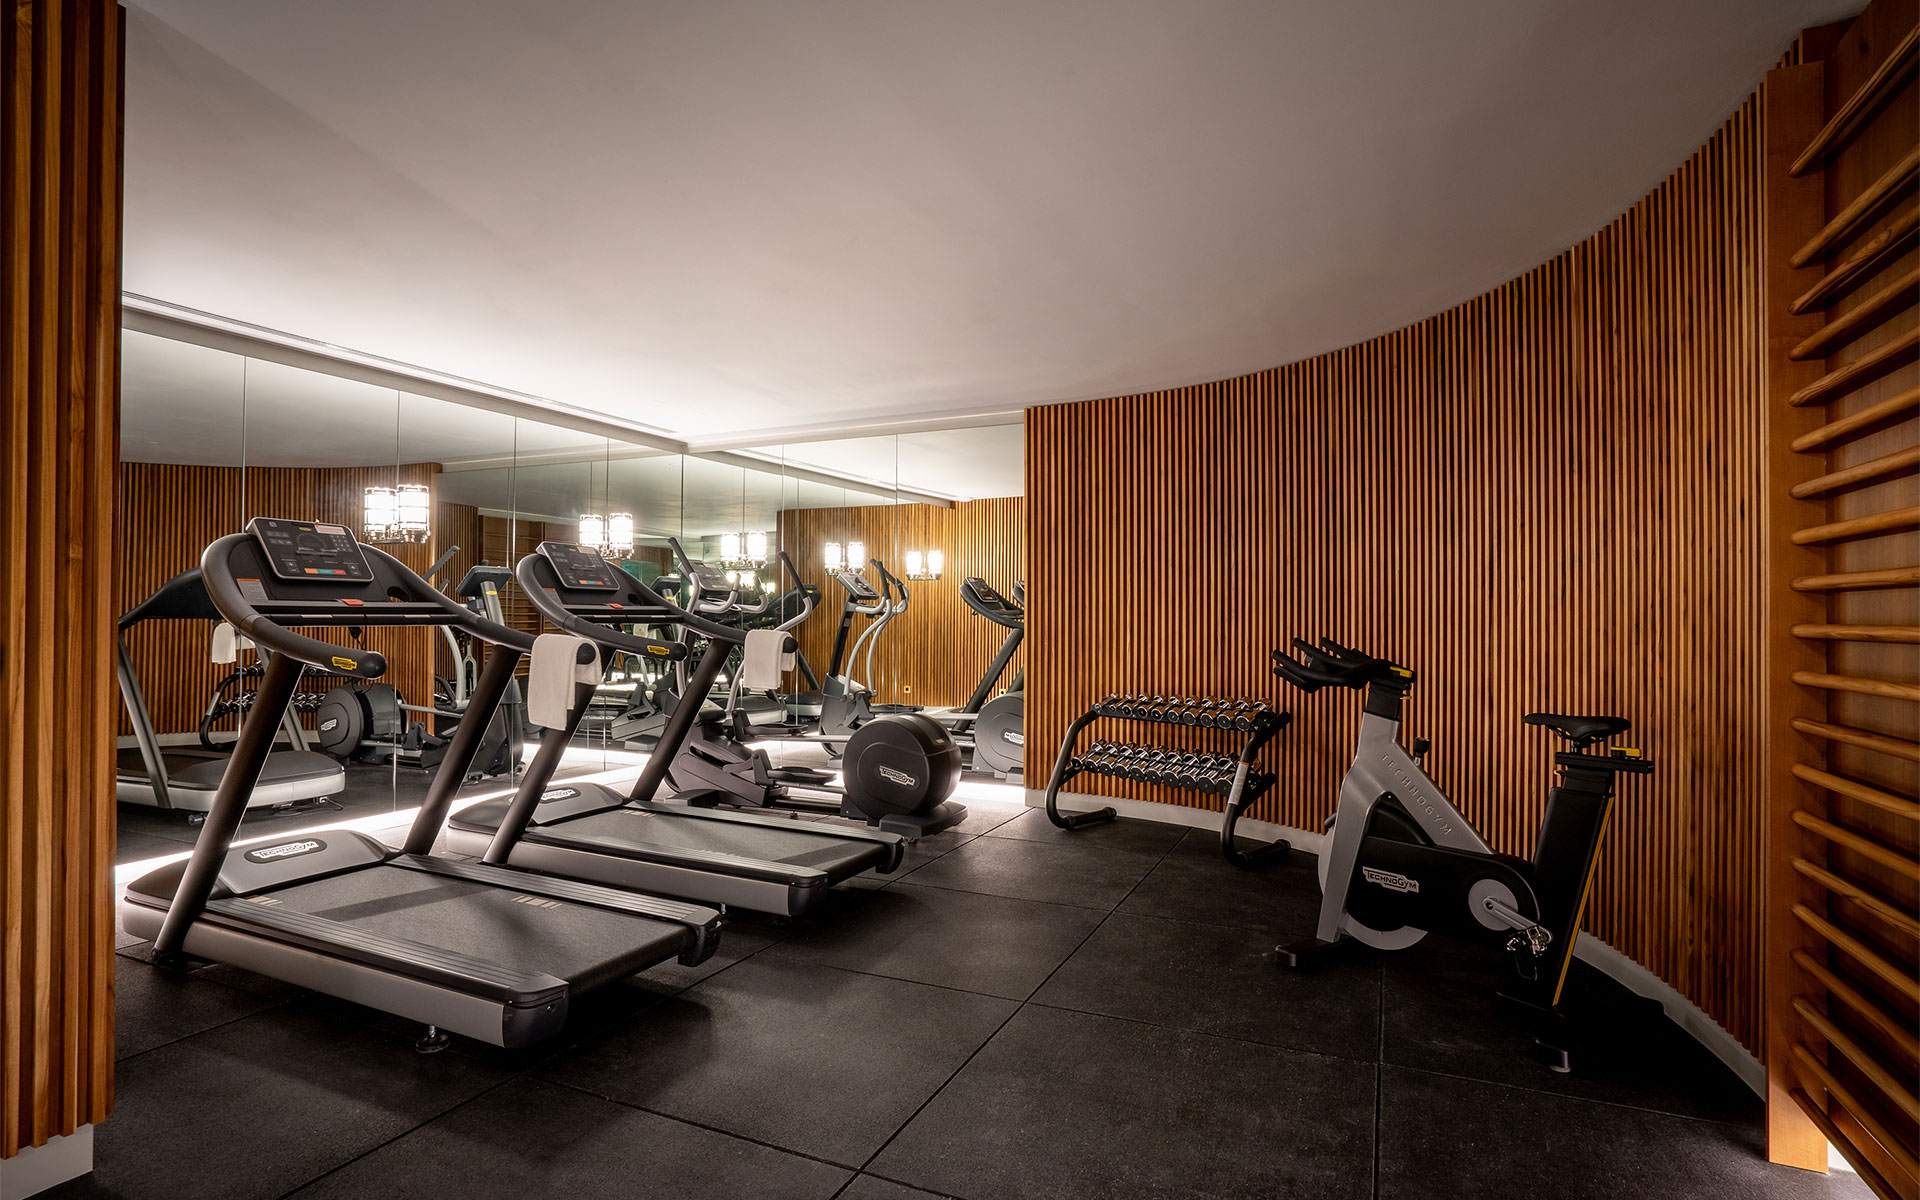 Maison Albar Hotels Le Monumental Palace fitness room